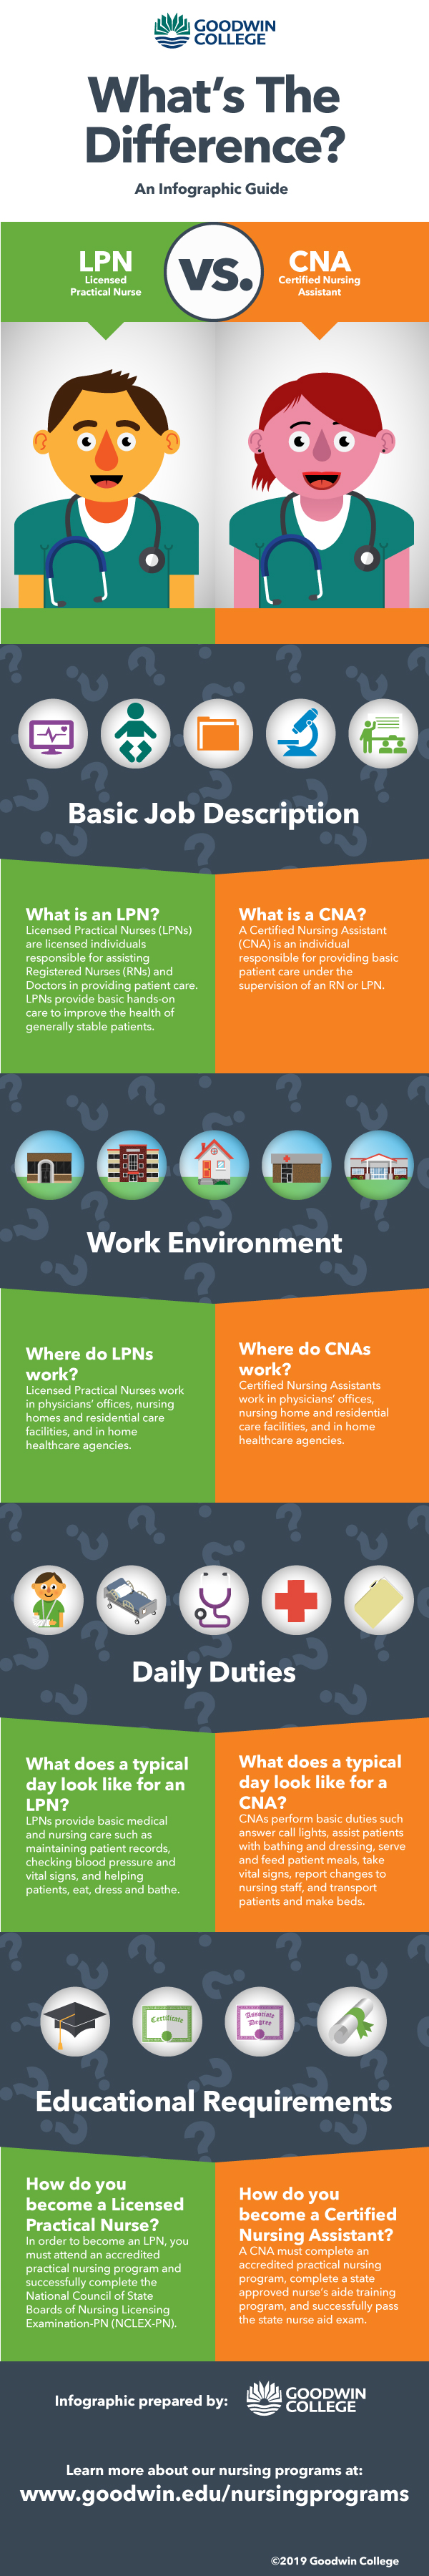 LPN Vs CNA Careers Infographic